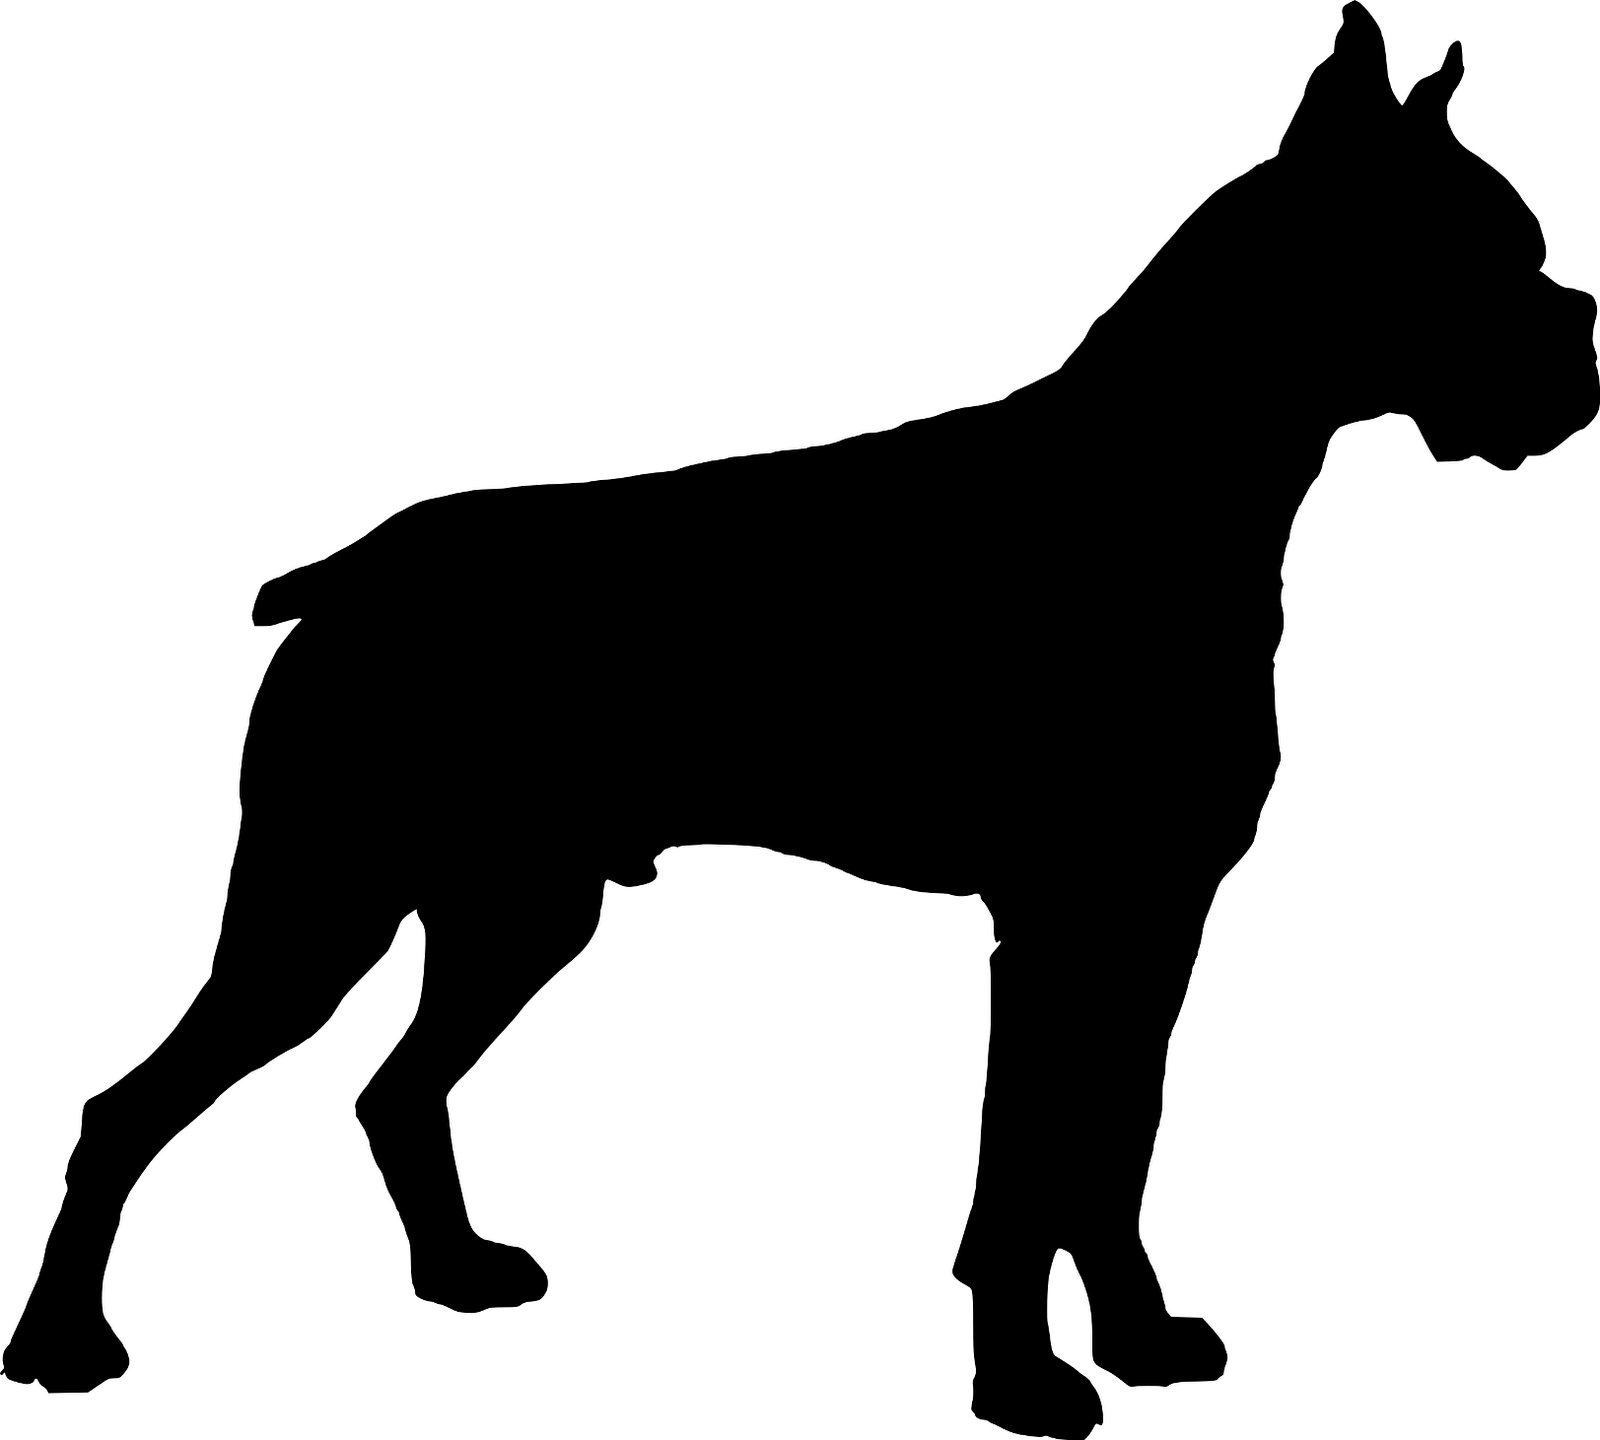 Dog at getdrawings com. Beagle clipart silhouette